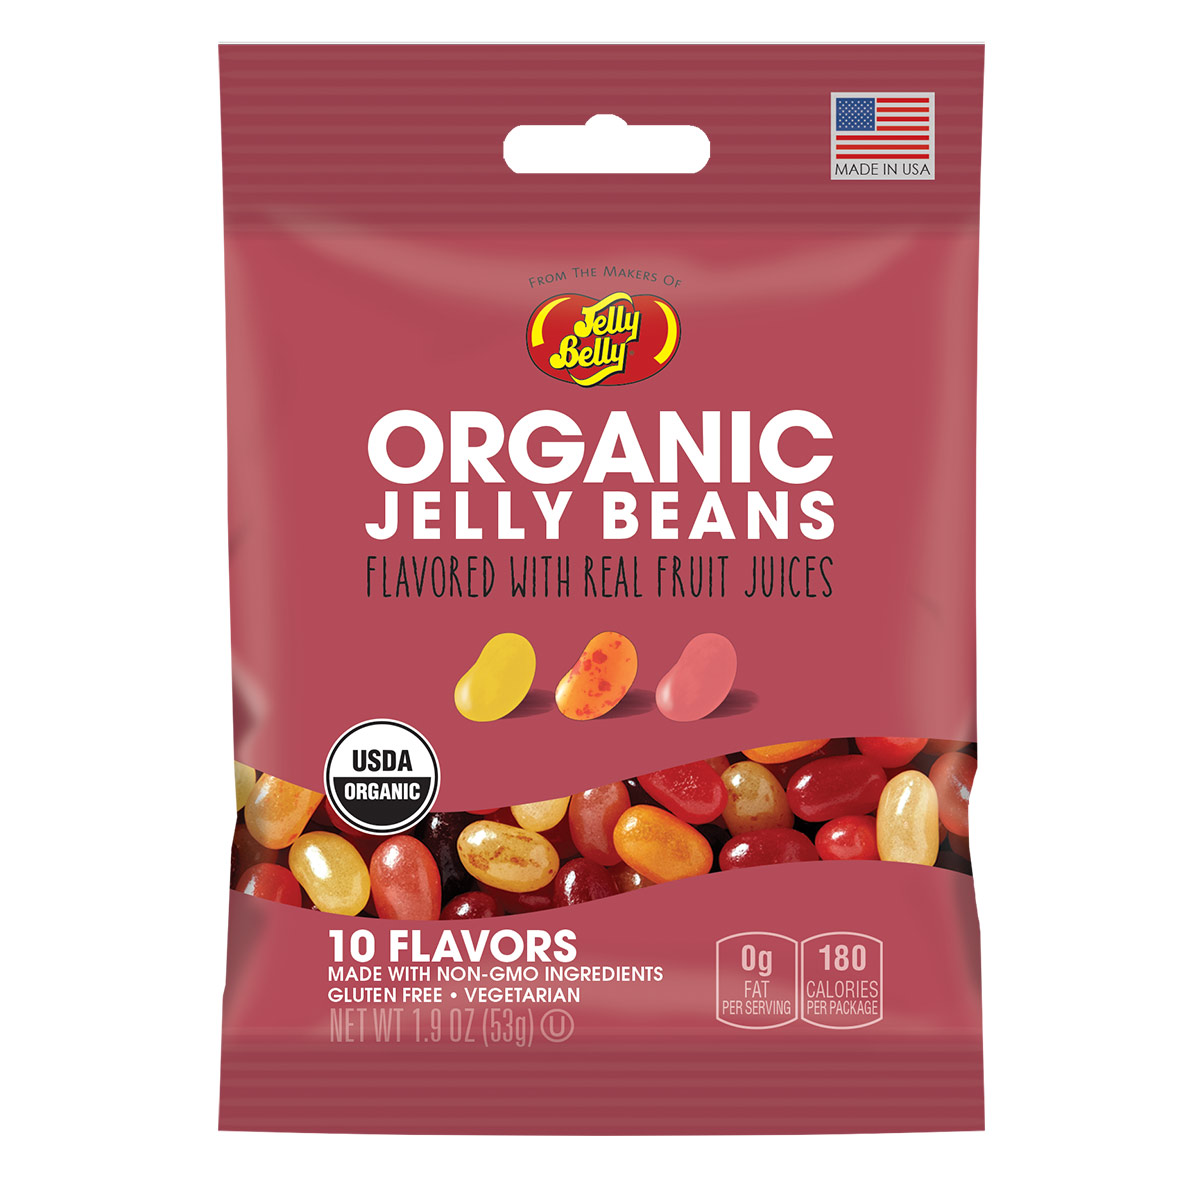 Organic Jelly Beans   Organic Candy   Jelly Belly Candy Company